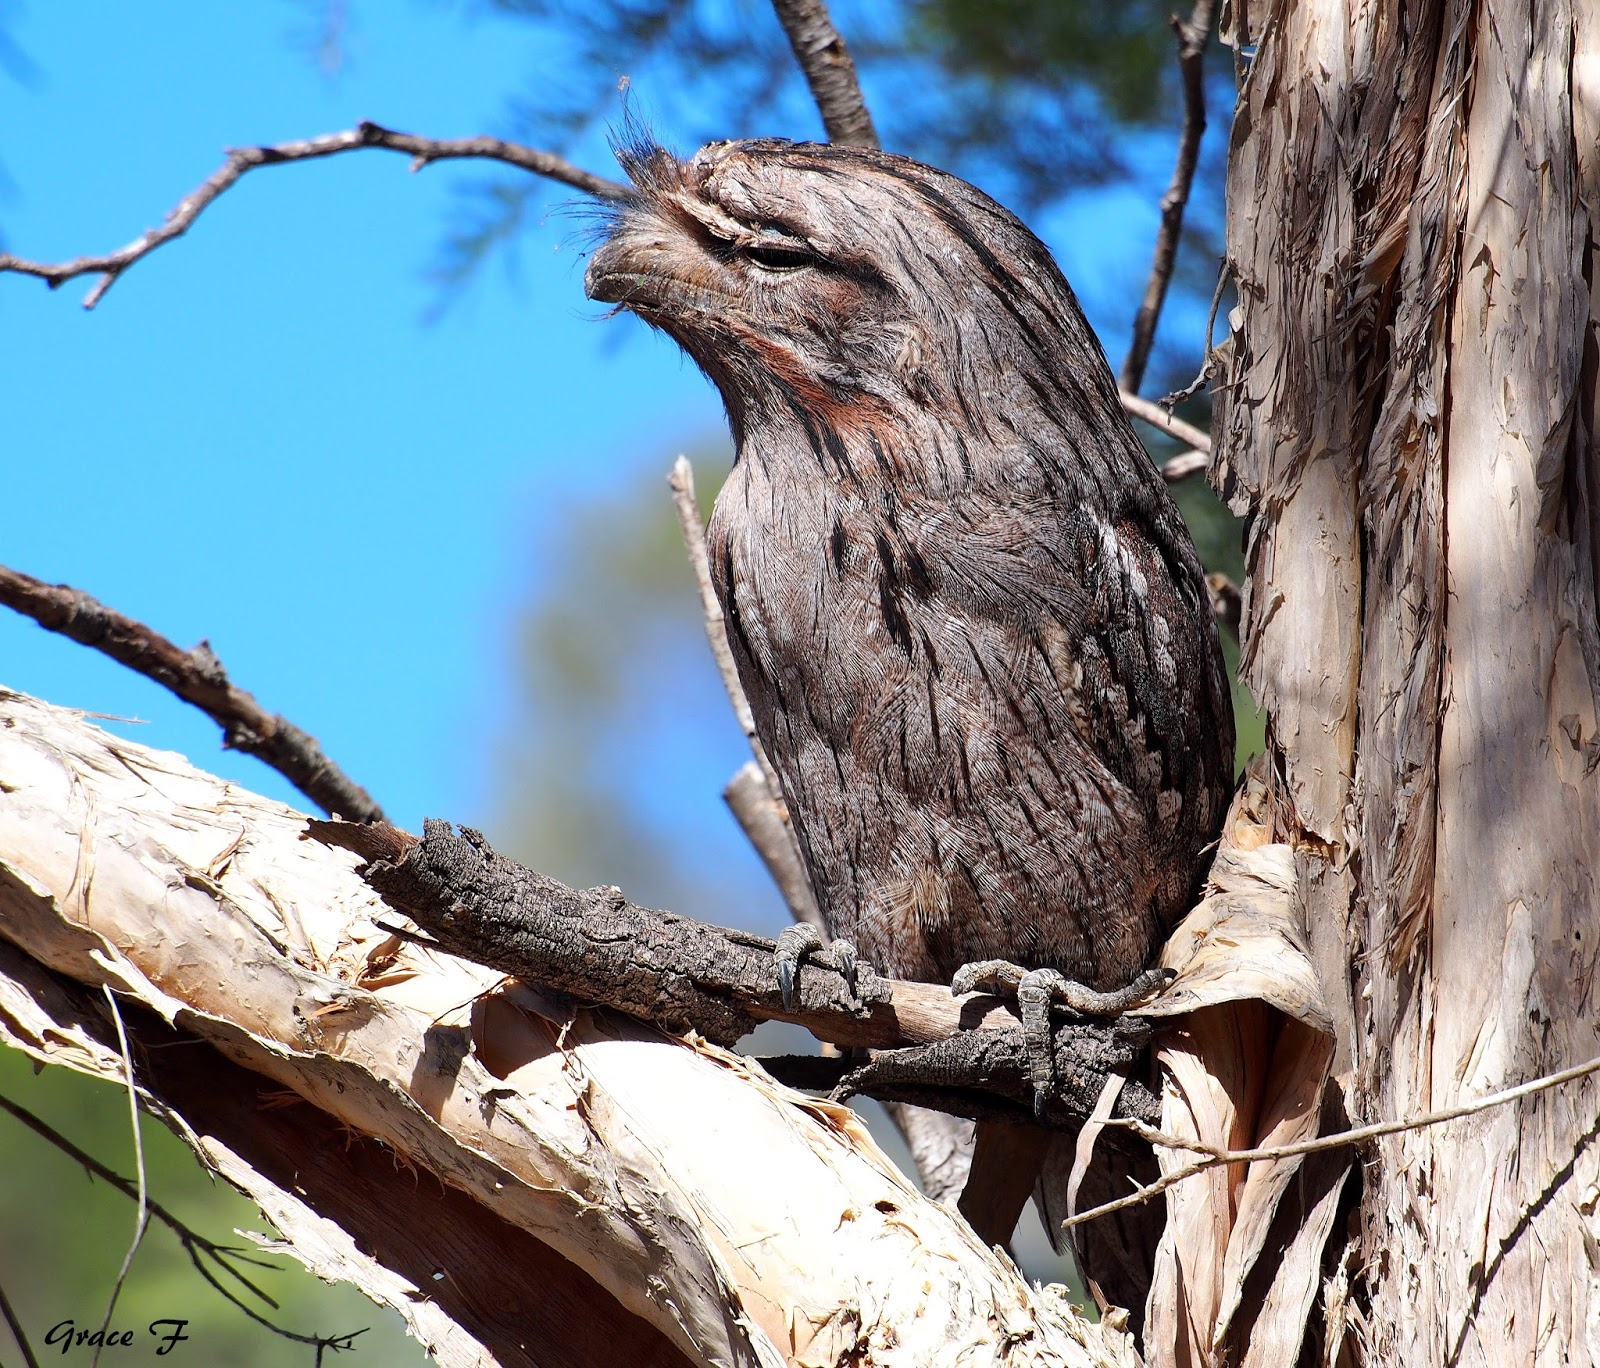 tawny frogmouth classification report Tawny frogmouths rarely catch insects on the wing as related nightjars and nighthawks do although still considered common in most parts of australia, regional population declines have been noted frogmouth mortality from road traffic, introduced predators such as cats, fox, and by secondary pesticide poisoning can be significant in some areas.